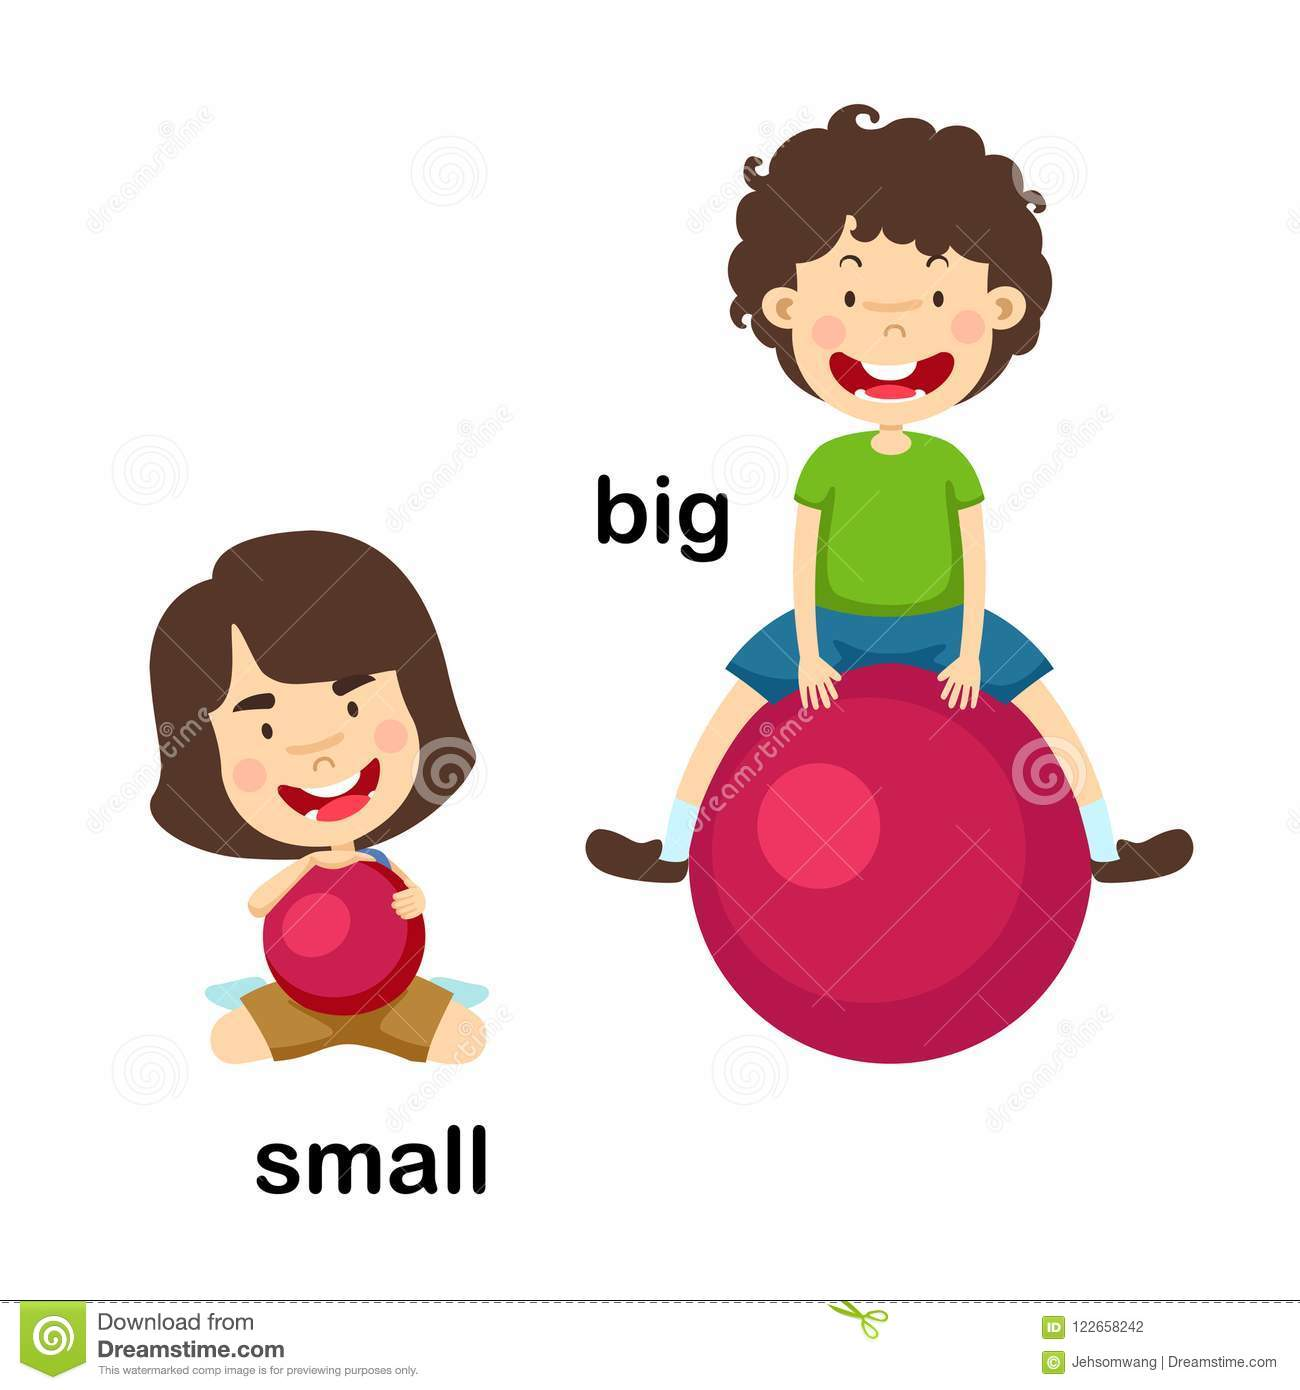 Small Cartoons Illustrations Amp Vector Stock Images